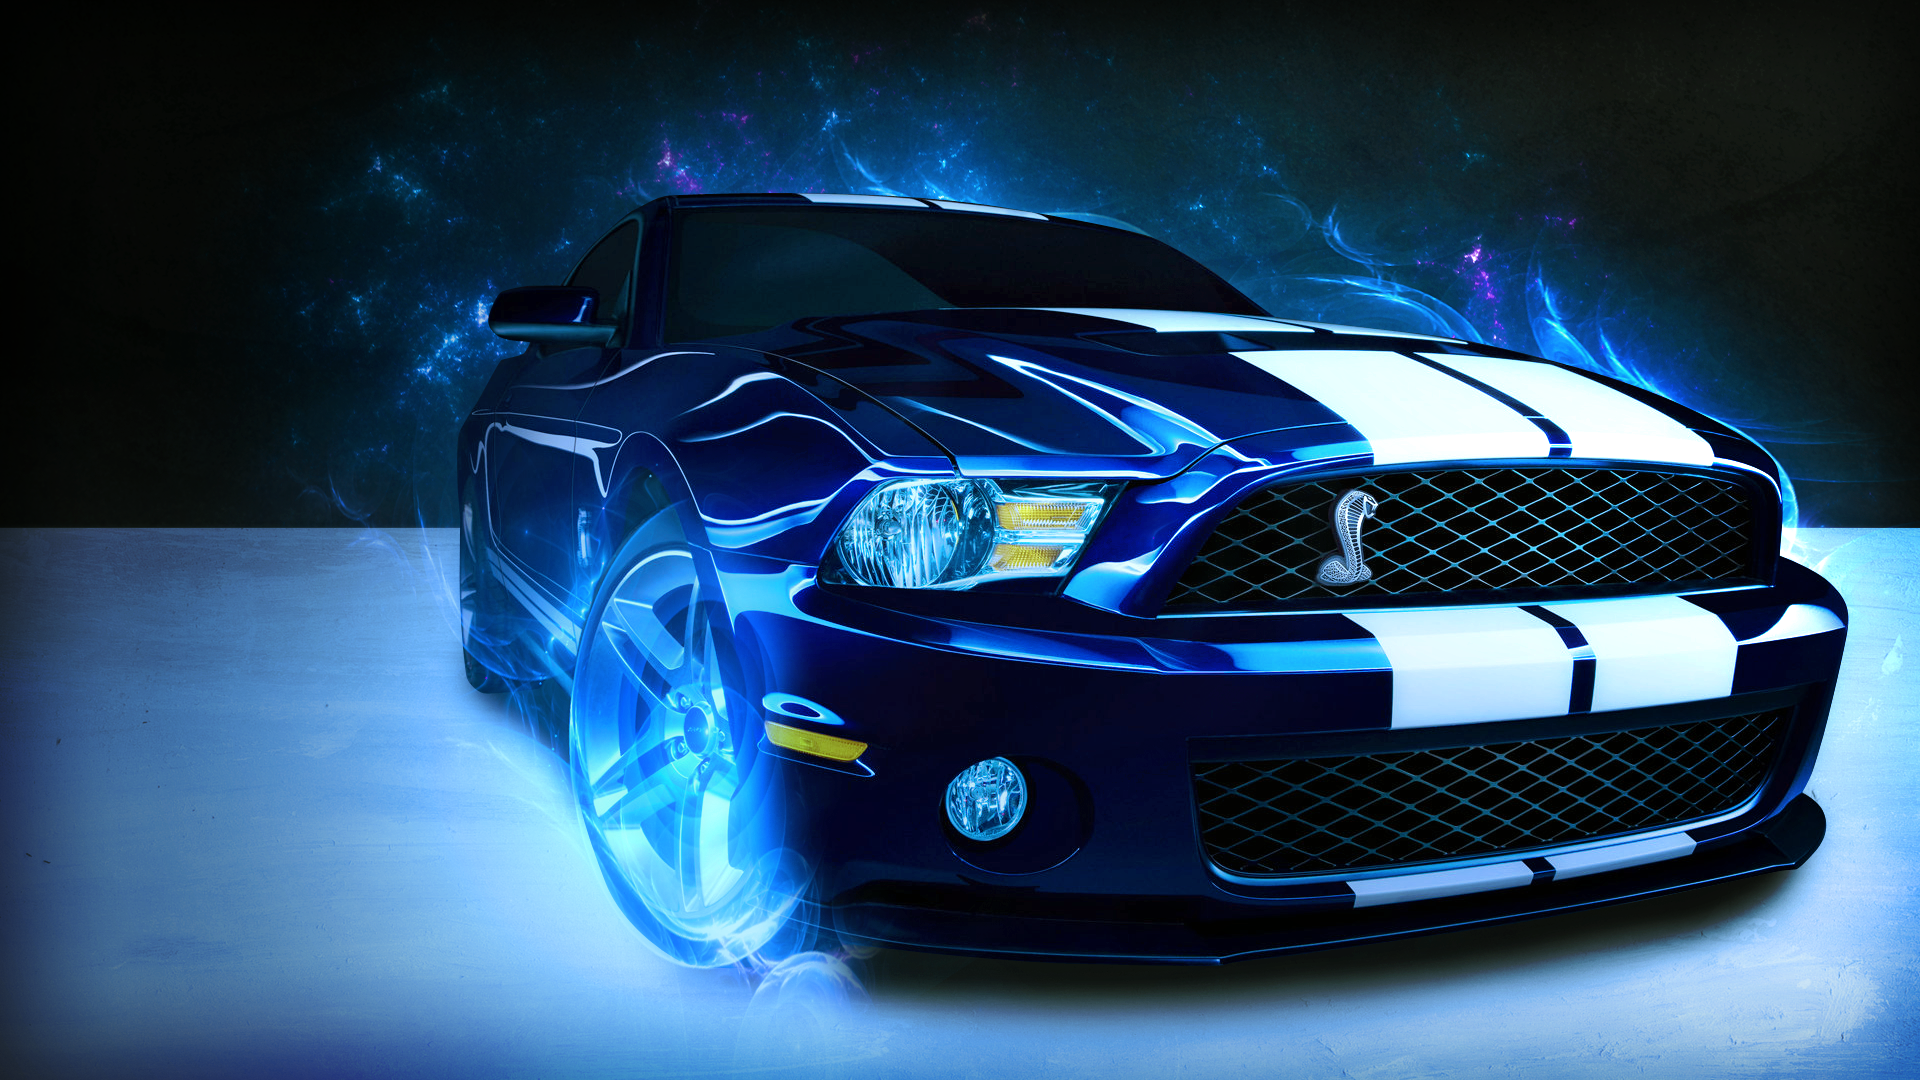 download shelby mustang 1080p wallpaper by markydman 1920x1080